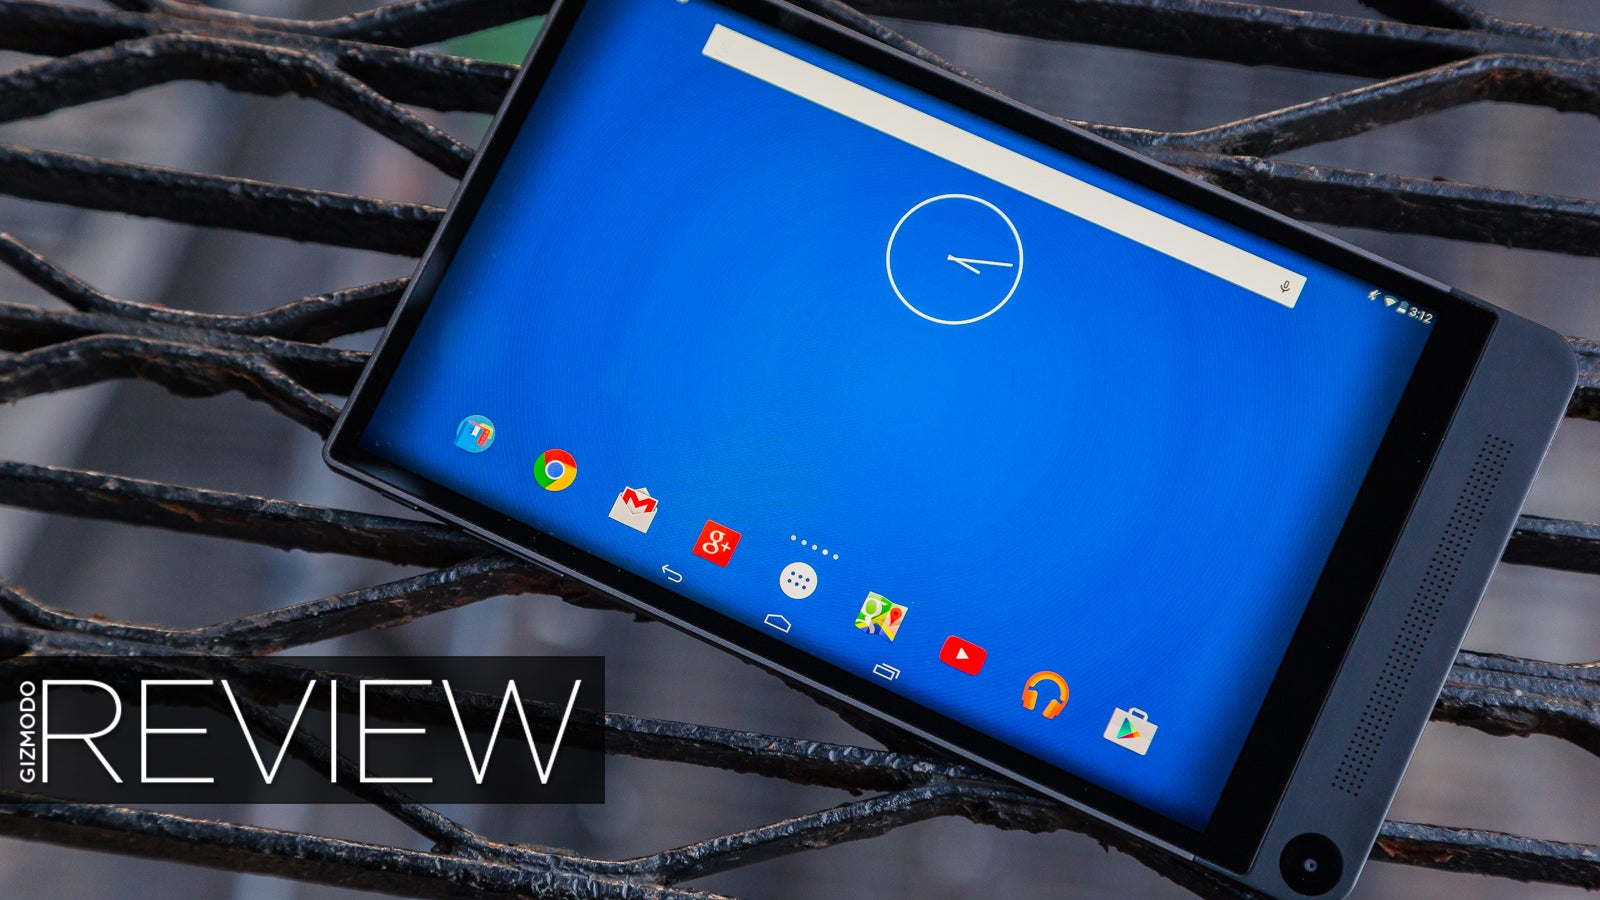 Dell Venue 8 7000 Review: A Terrible Name For an Incredible Tablet